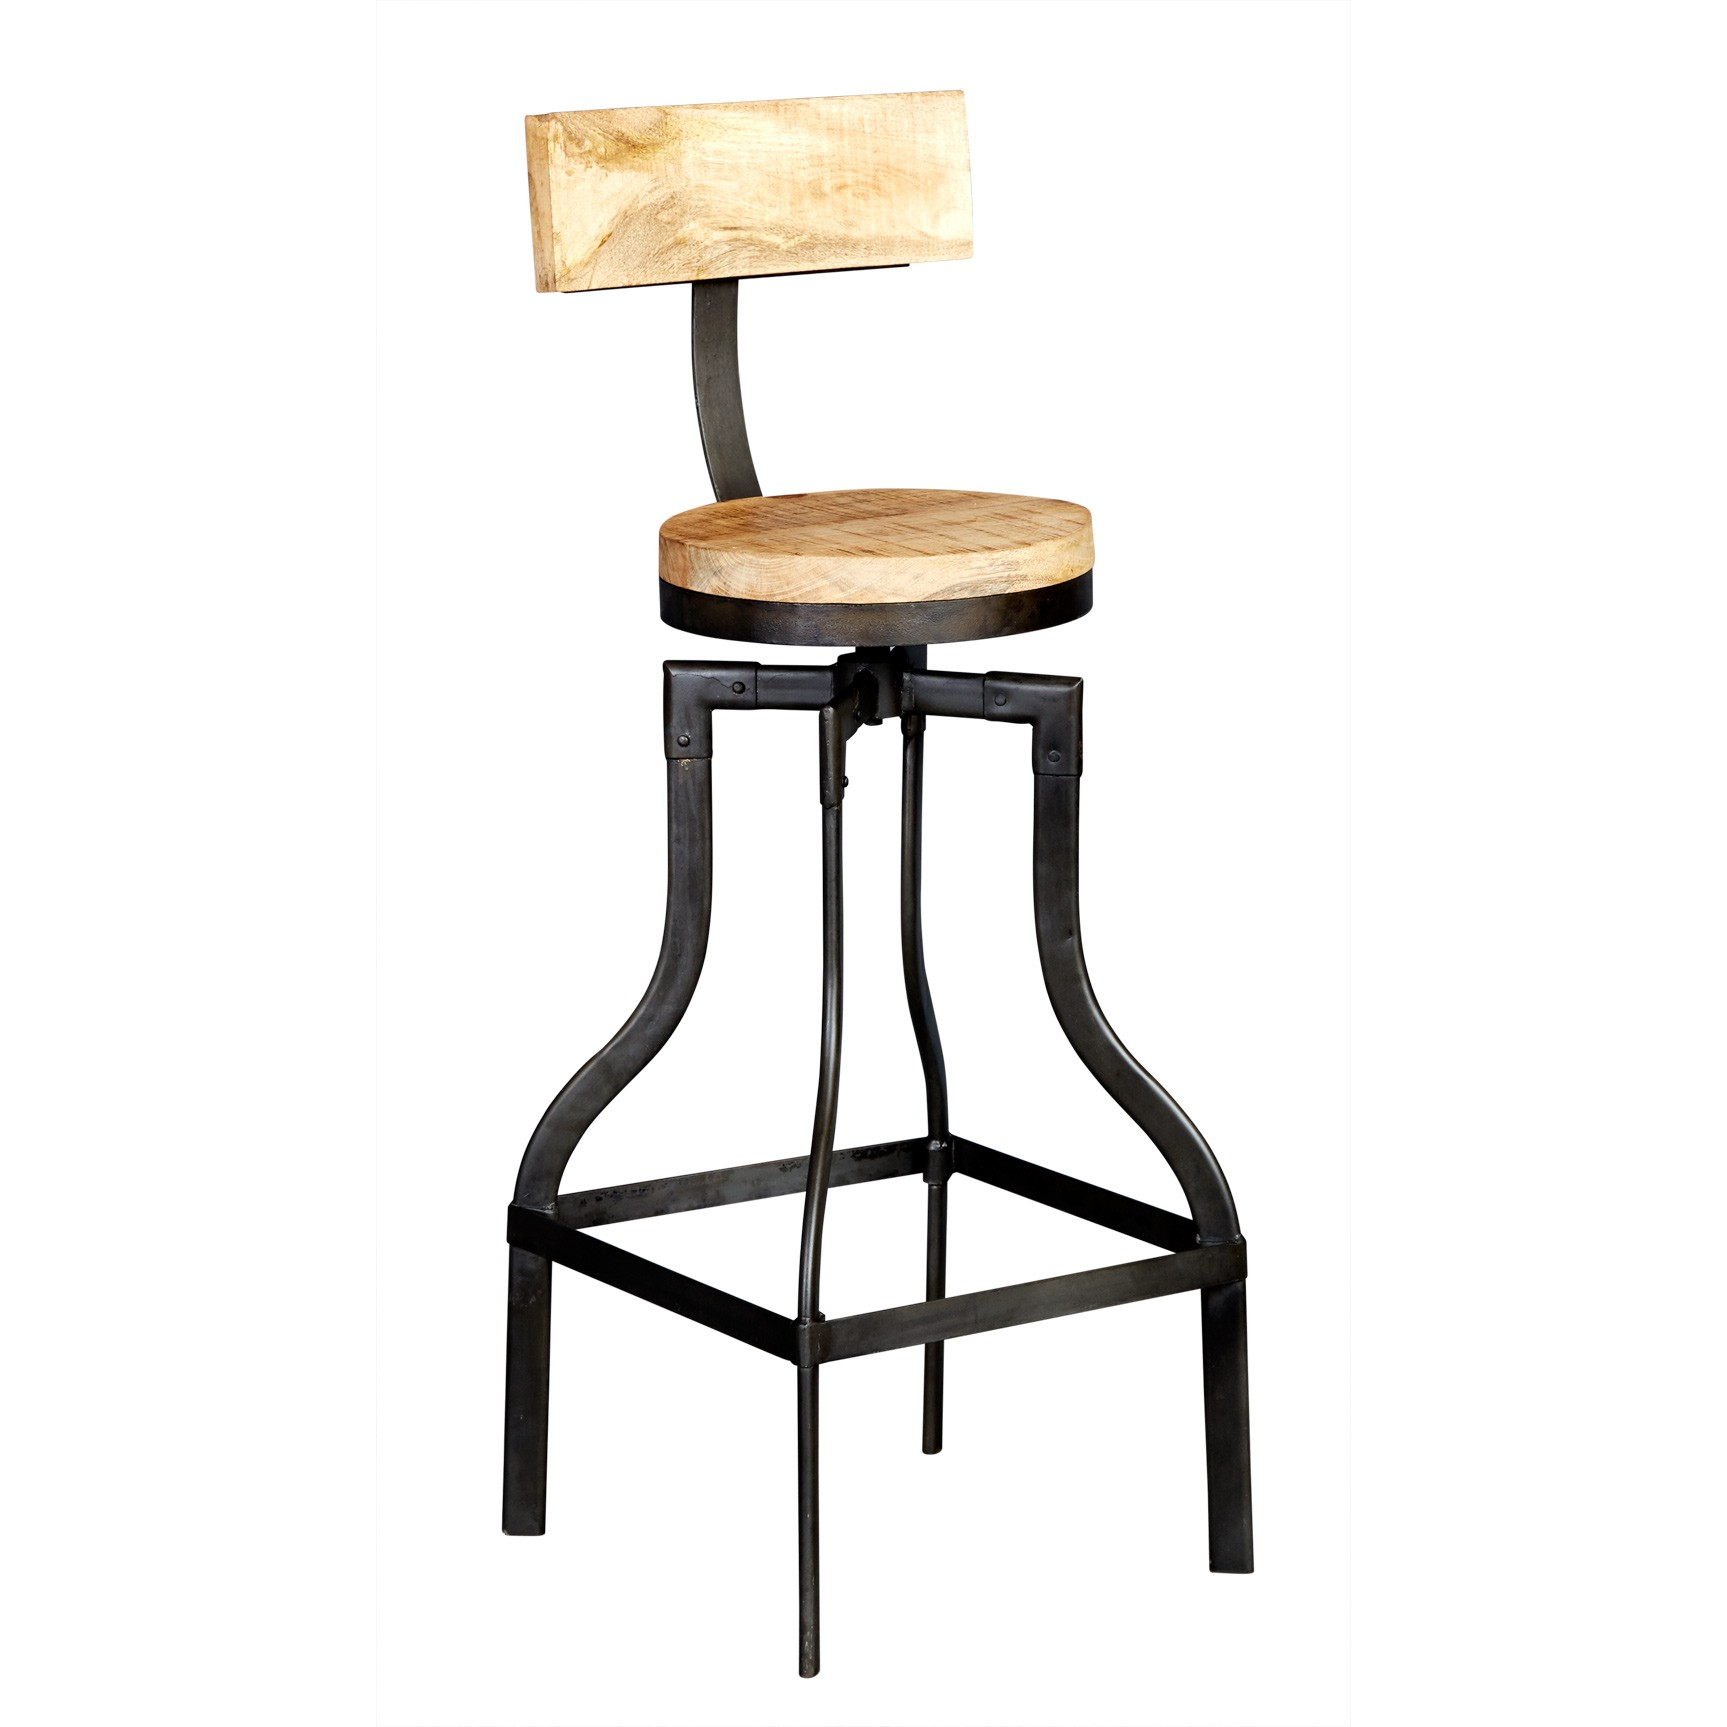 Bar Stool Upcycled Industrial Vintage Mintis : id30 from vertyfurniture.co.uk size 1727 x 1727 jpeg 157kB